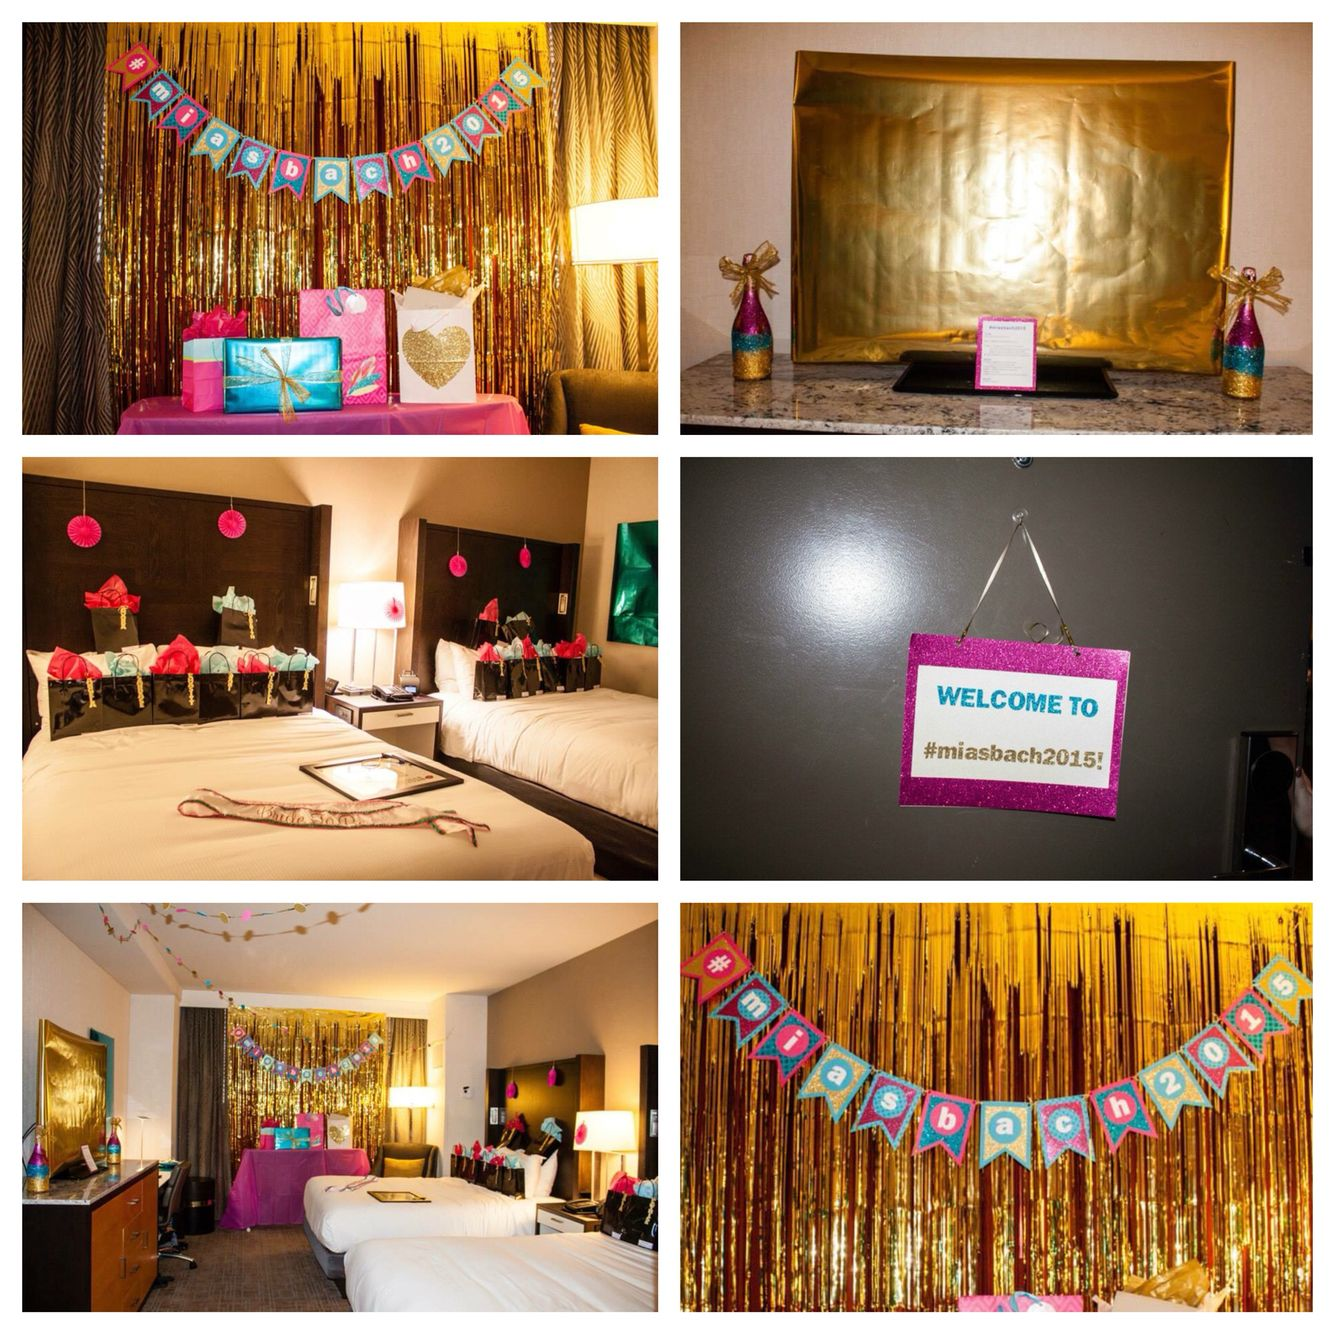 Hotel room bachelorette decorations pink turquoise gold glitter theme banner ironing birthday partieshotel party also kayla dornevil kdornevil on pinterest rh